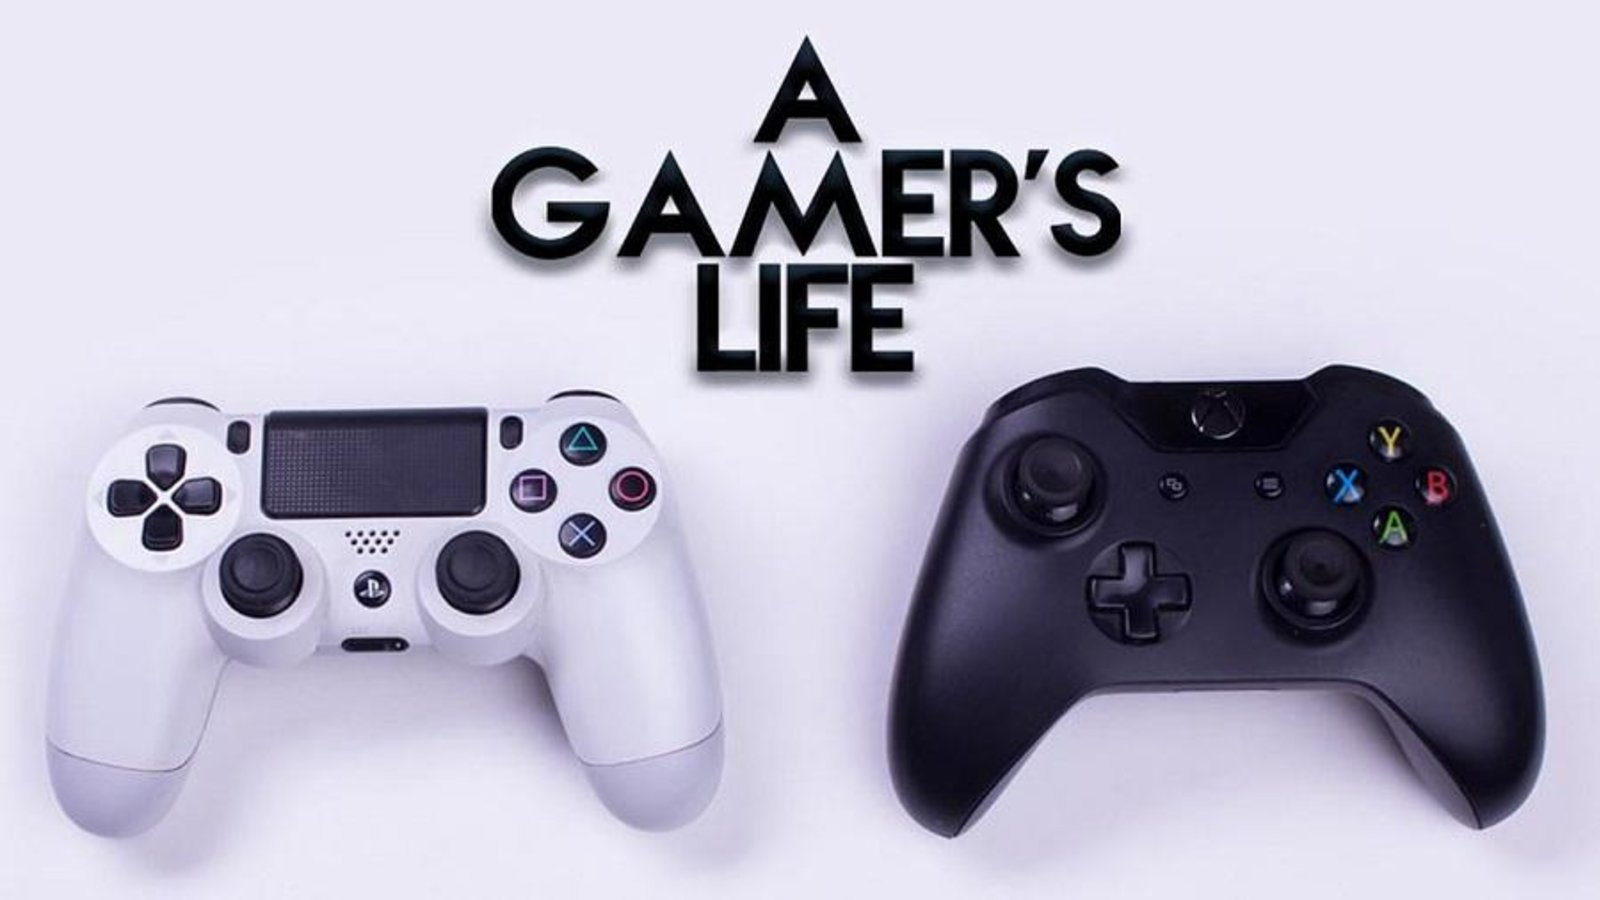 A Gamer's Life - The Lives of Professional Video Game Players